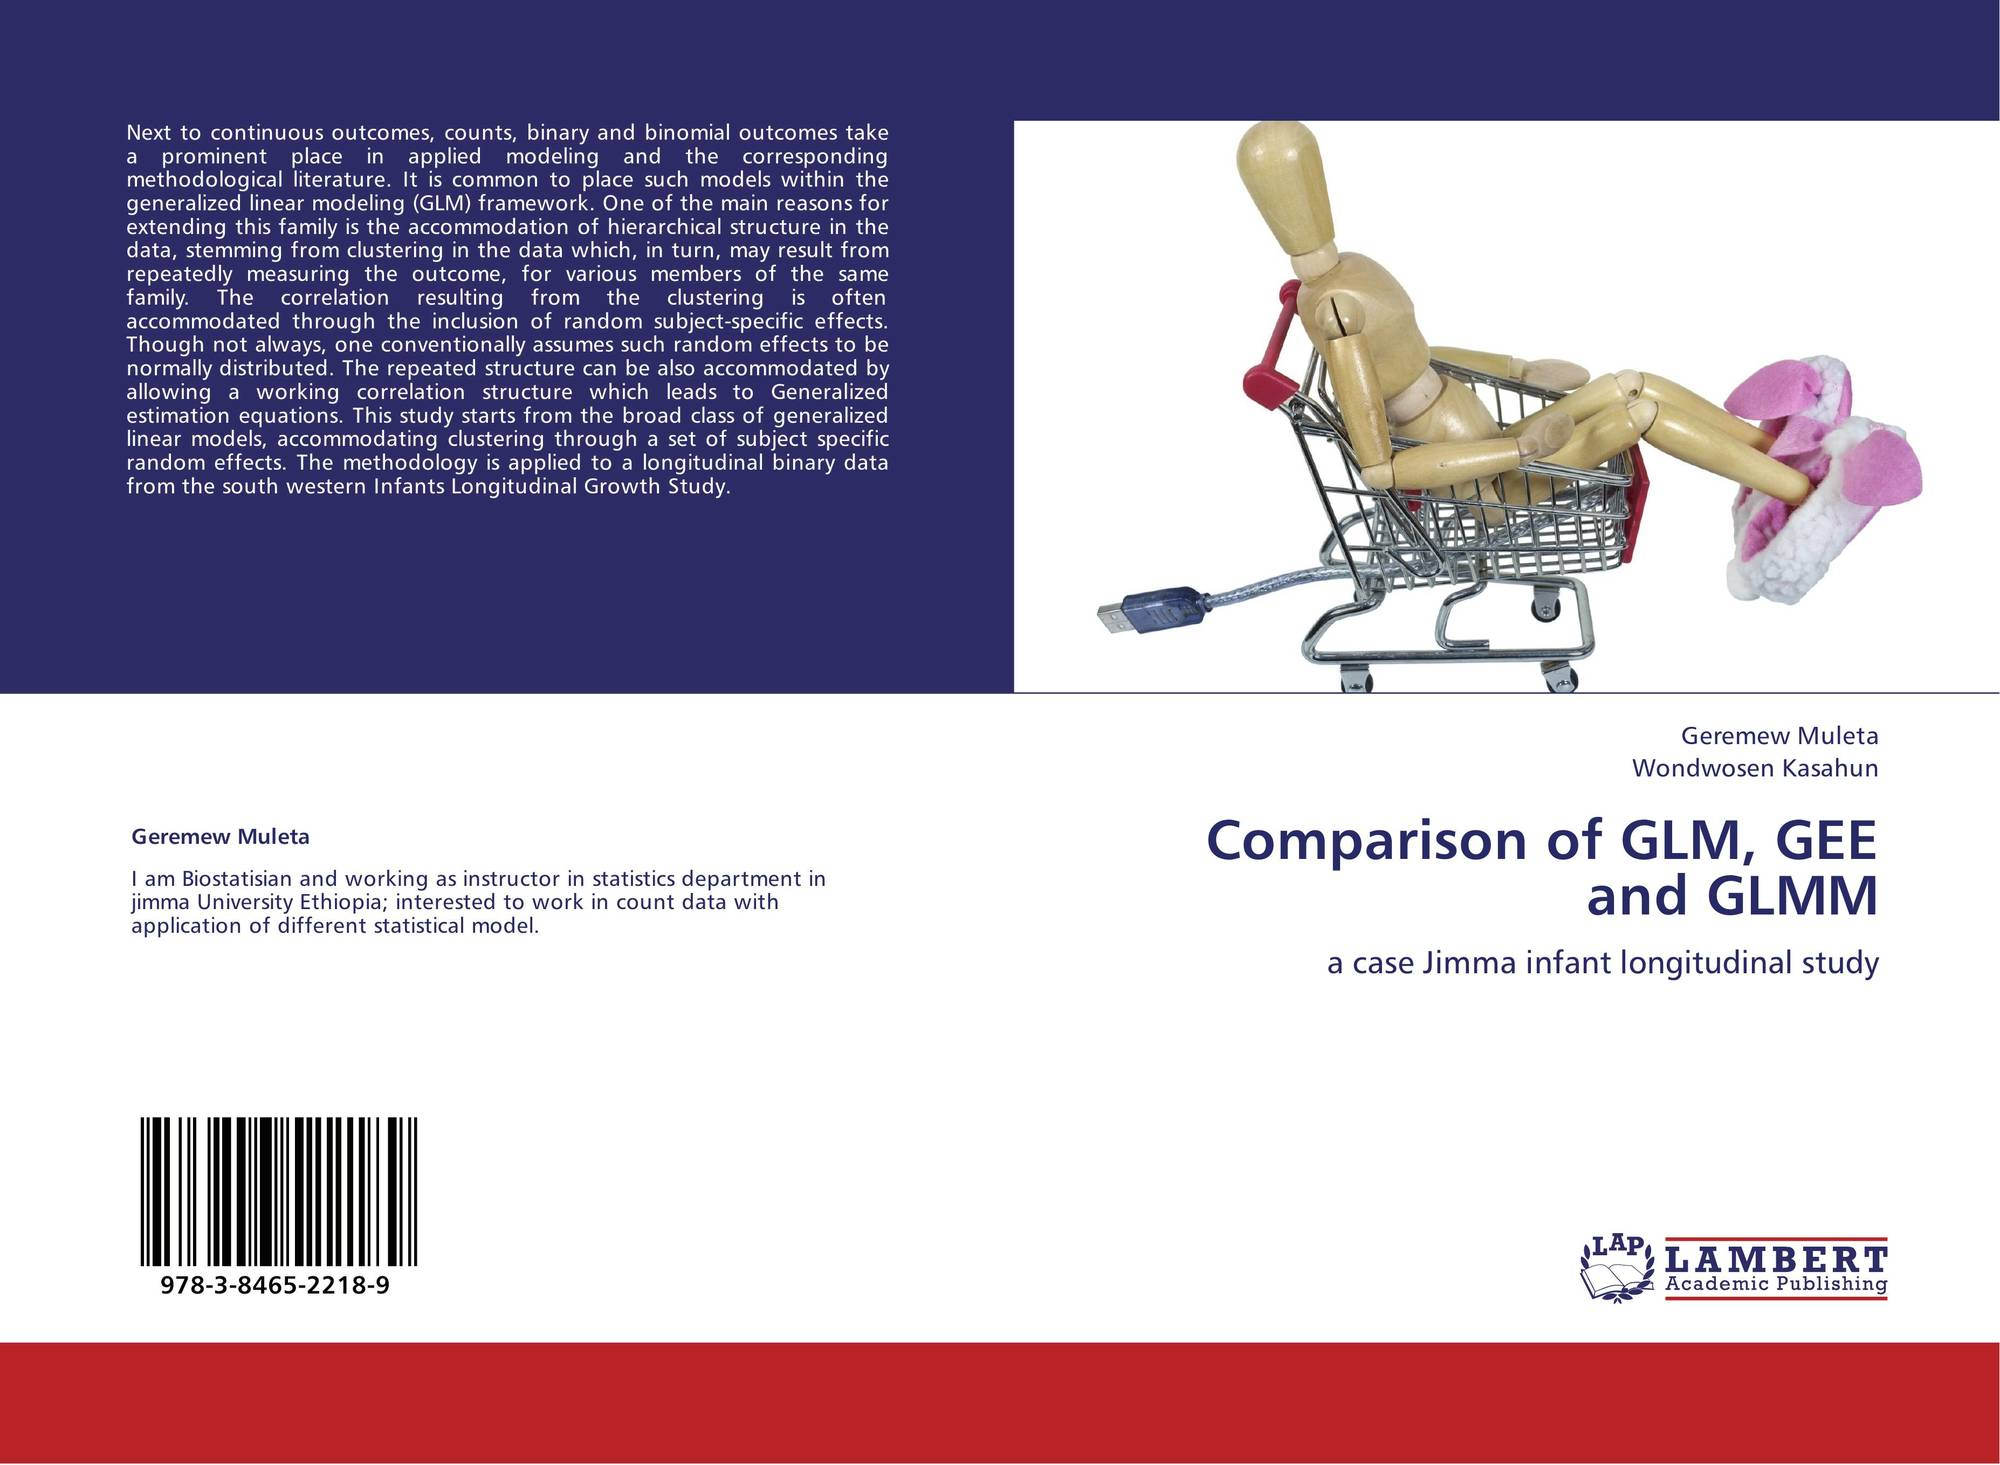 Comparison of GLM, GEE and GLMM, 978-3-8465-2218-9